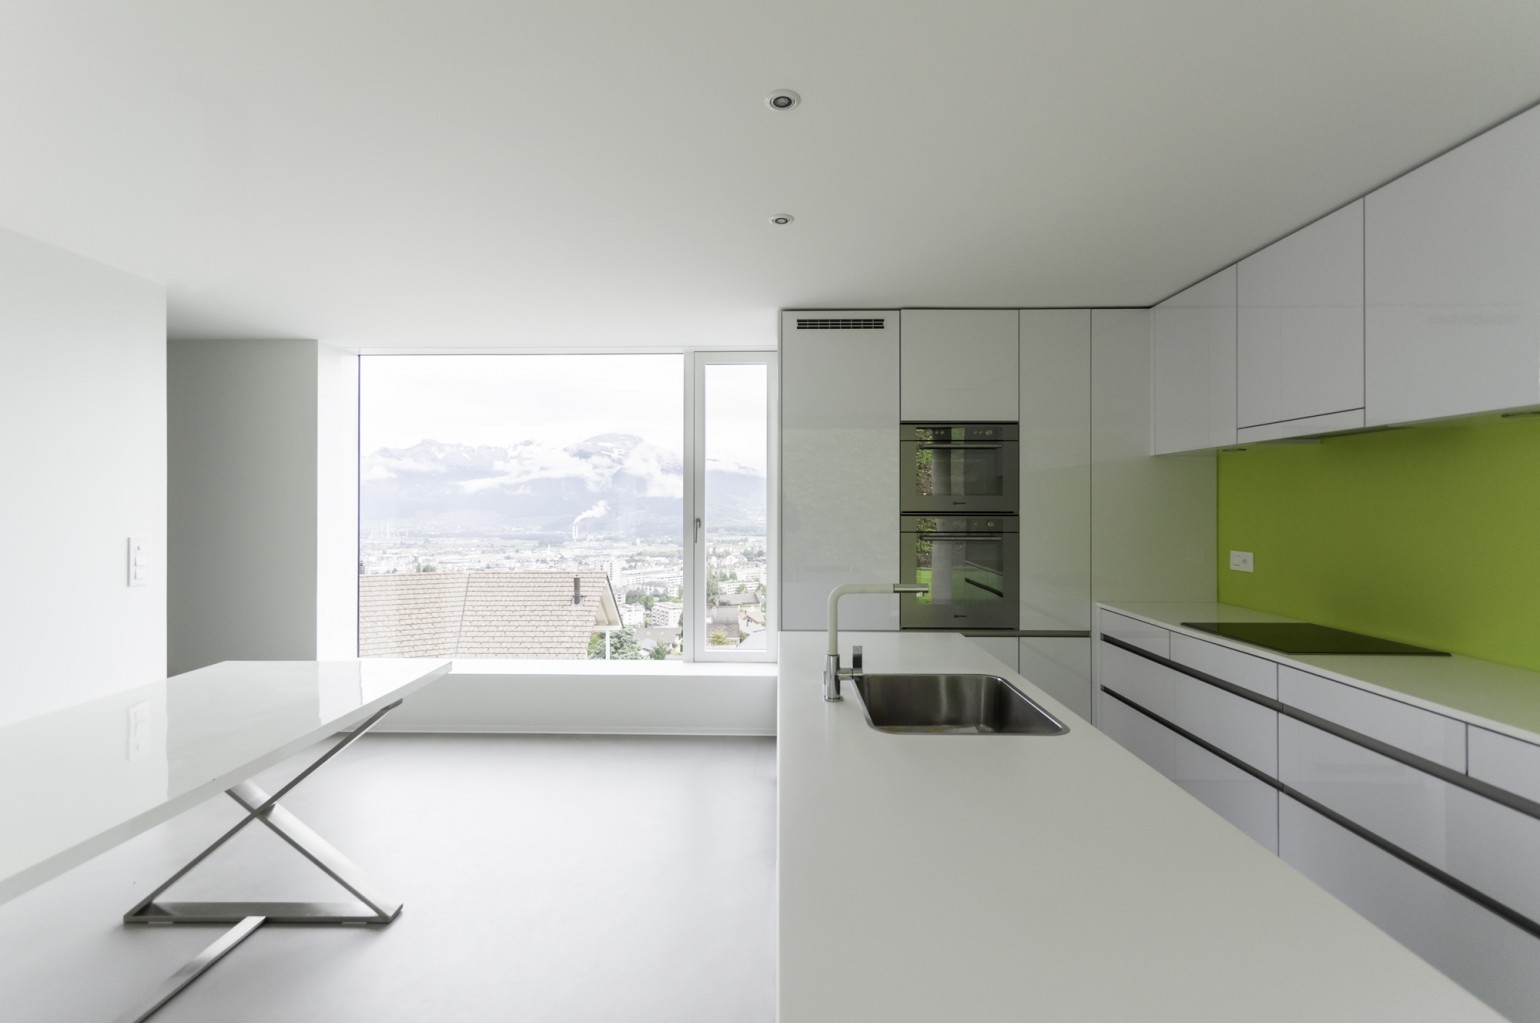 maison_catanese_choex_meyer_architecture_sion_07